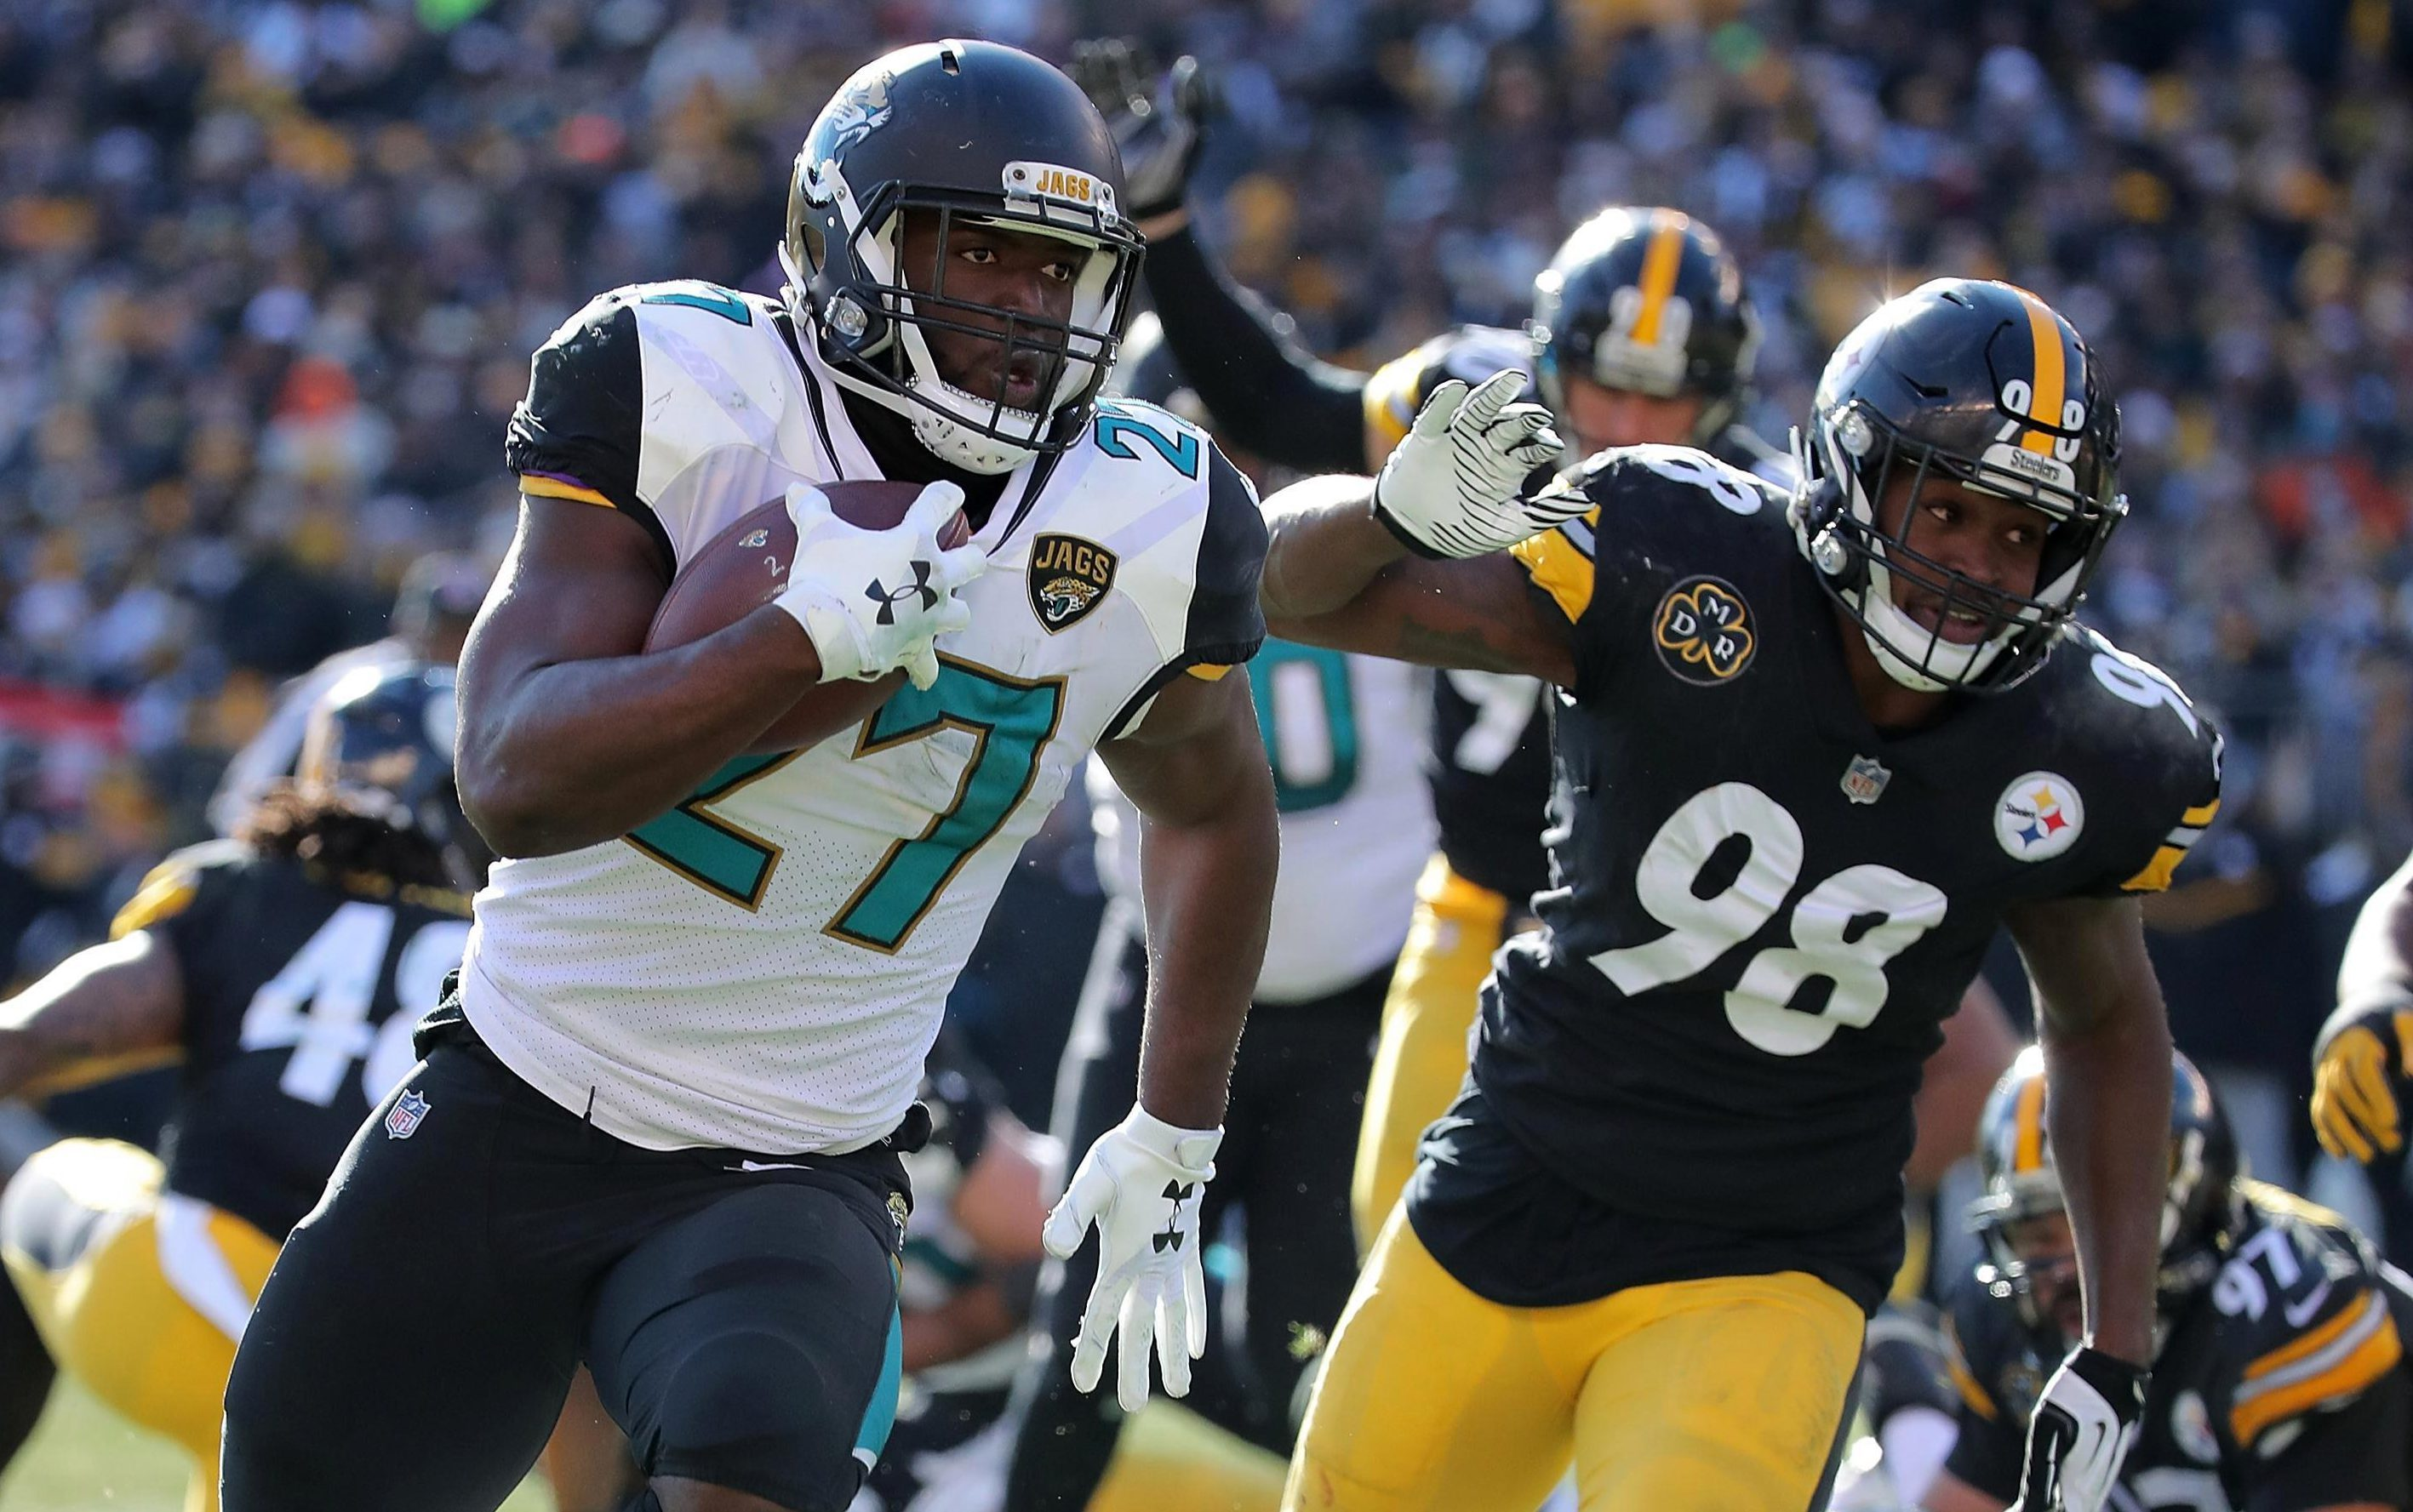 Pittsburgh Steelers 42 Jacksonville Jaguars 45: Leonard Fournette bags three touchdowns as Jags stun Steelers in thrilling AFC showdown